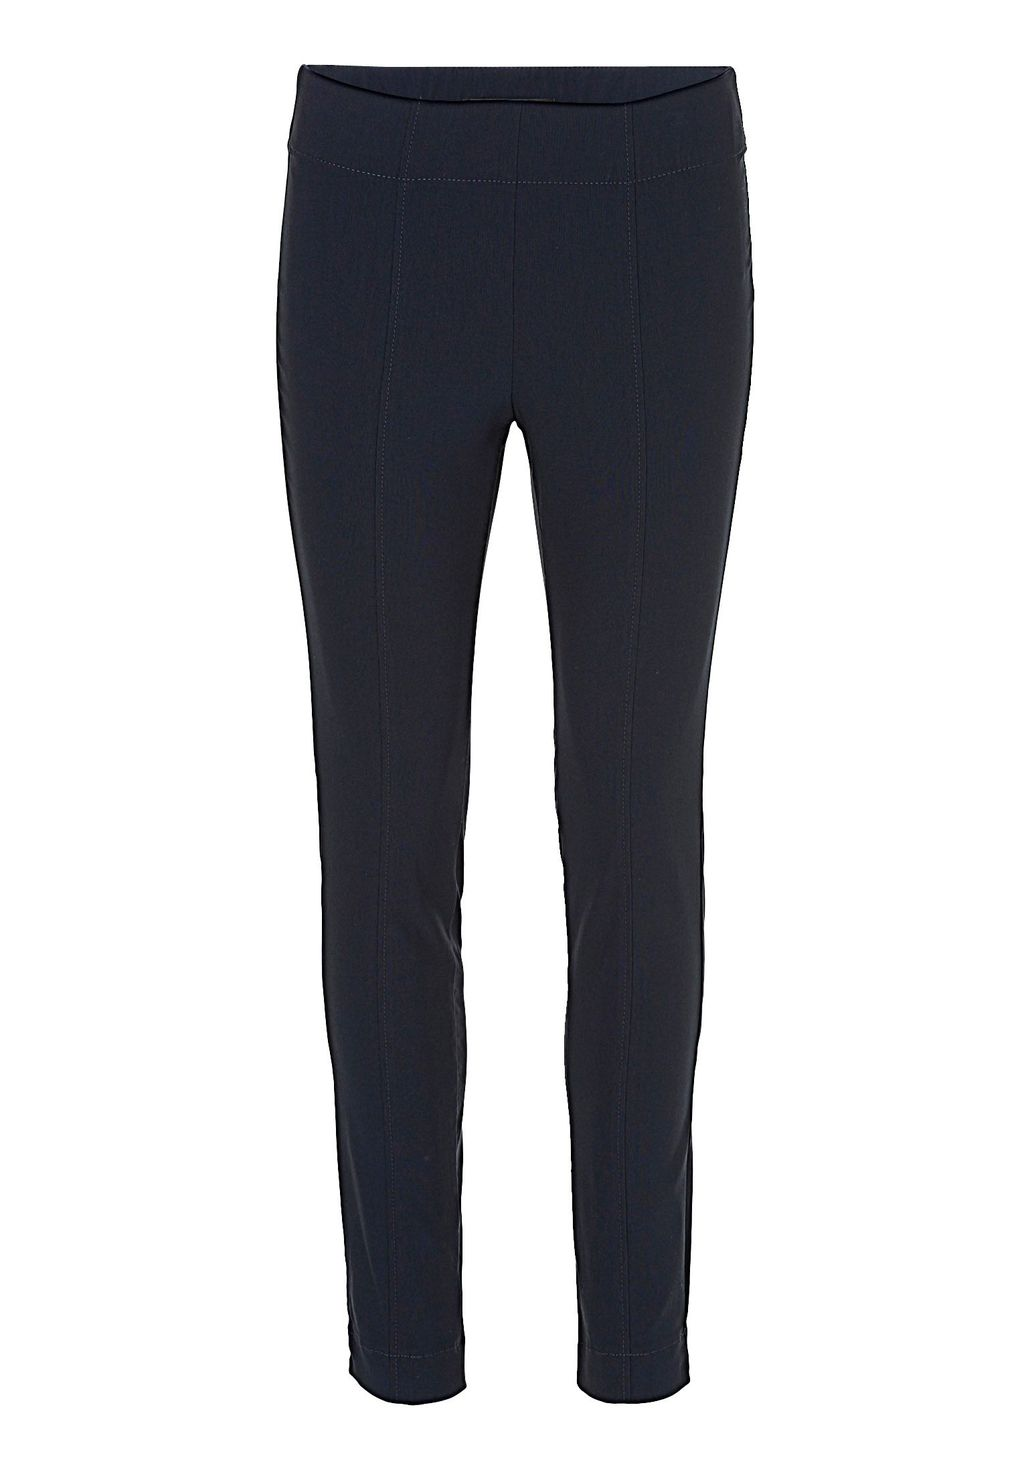 Stretch Jeggings, Navy - length: standard; pattern: plain; style: jeggings; waist: mid/regular rise; predominant colour: navy; occasions: casual, creative work; fibres: cotton - stretch; jeans detail: dark wash; texture group: denim; pattern type: fabric; season: s/s 2016